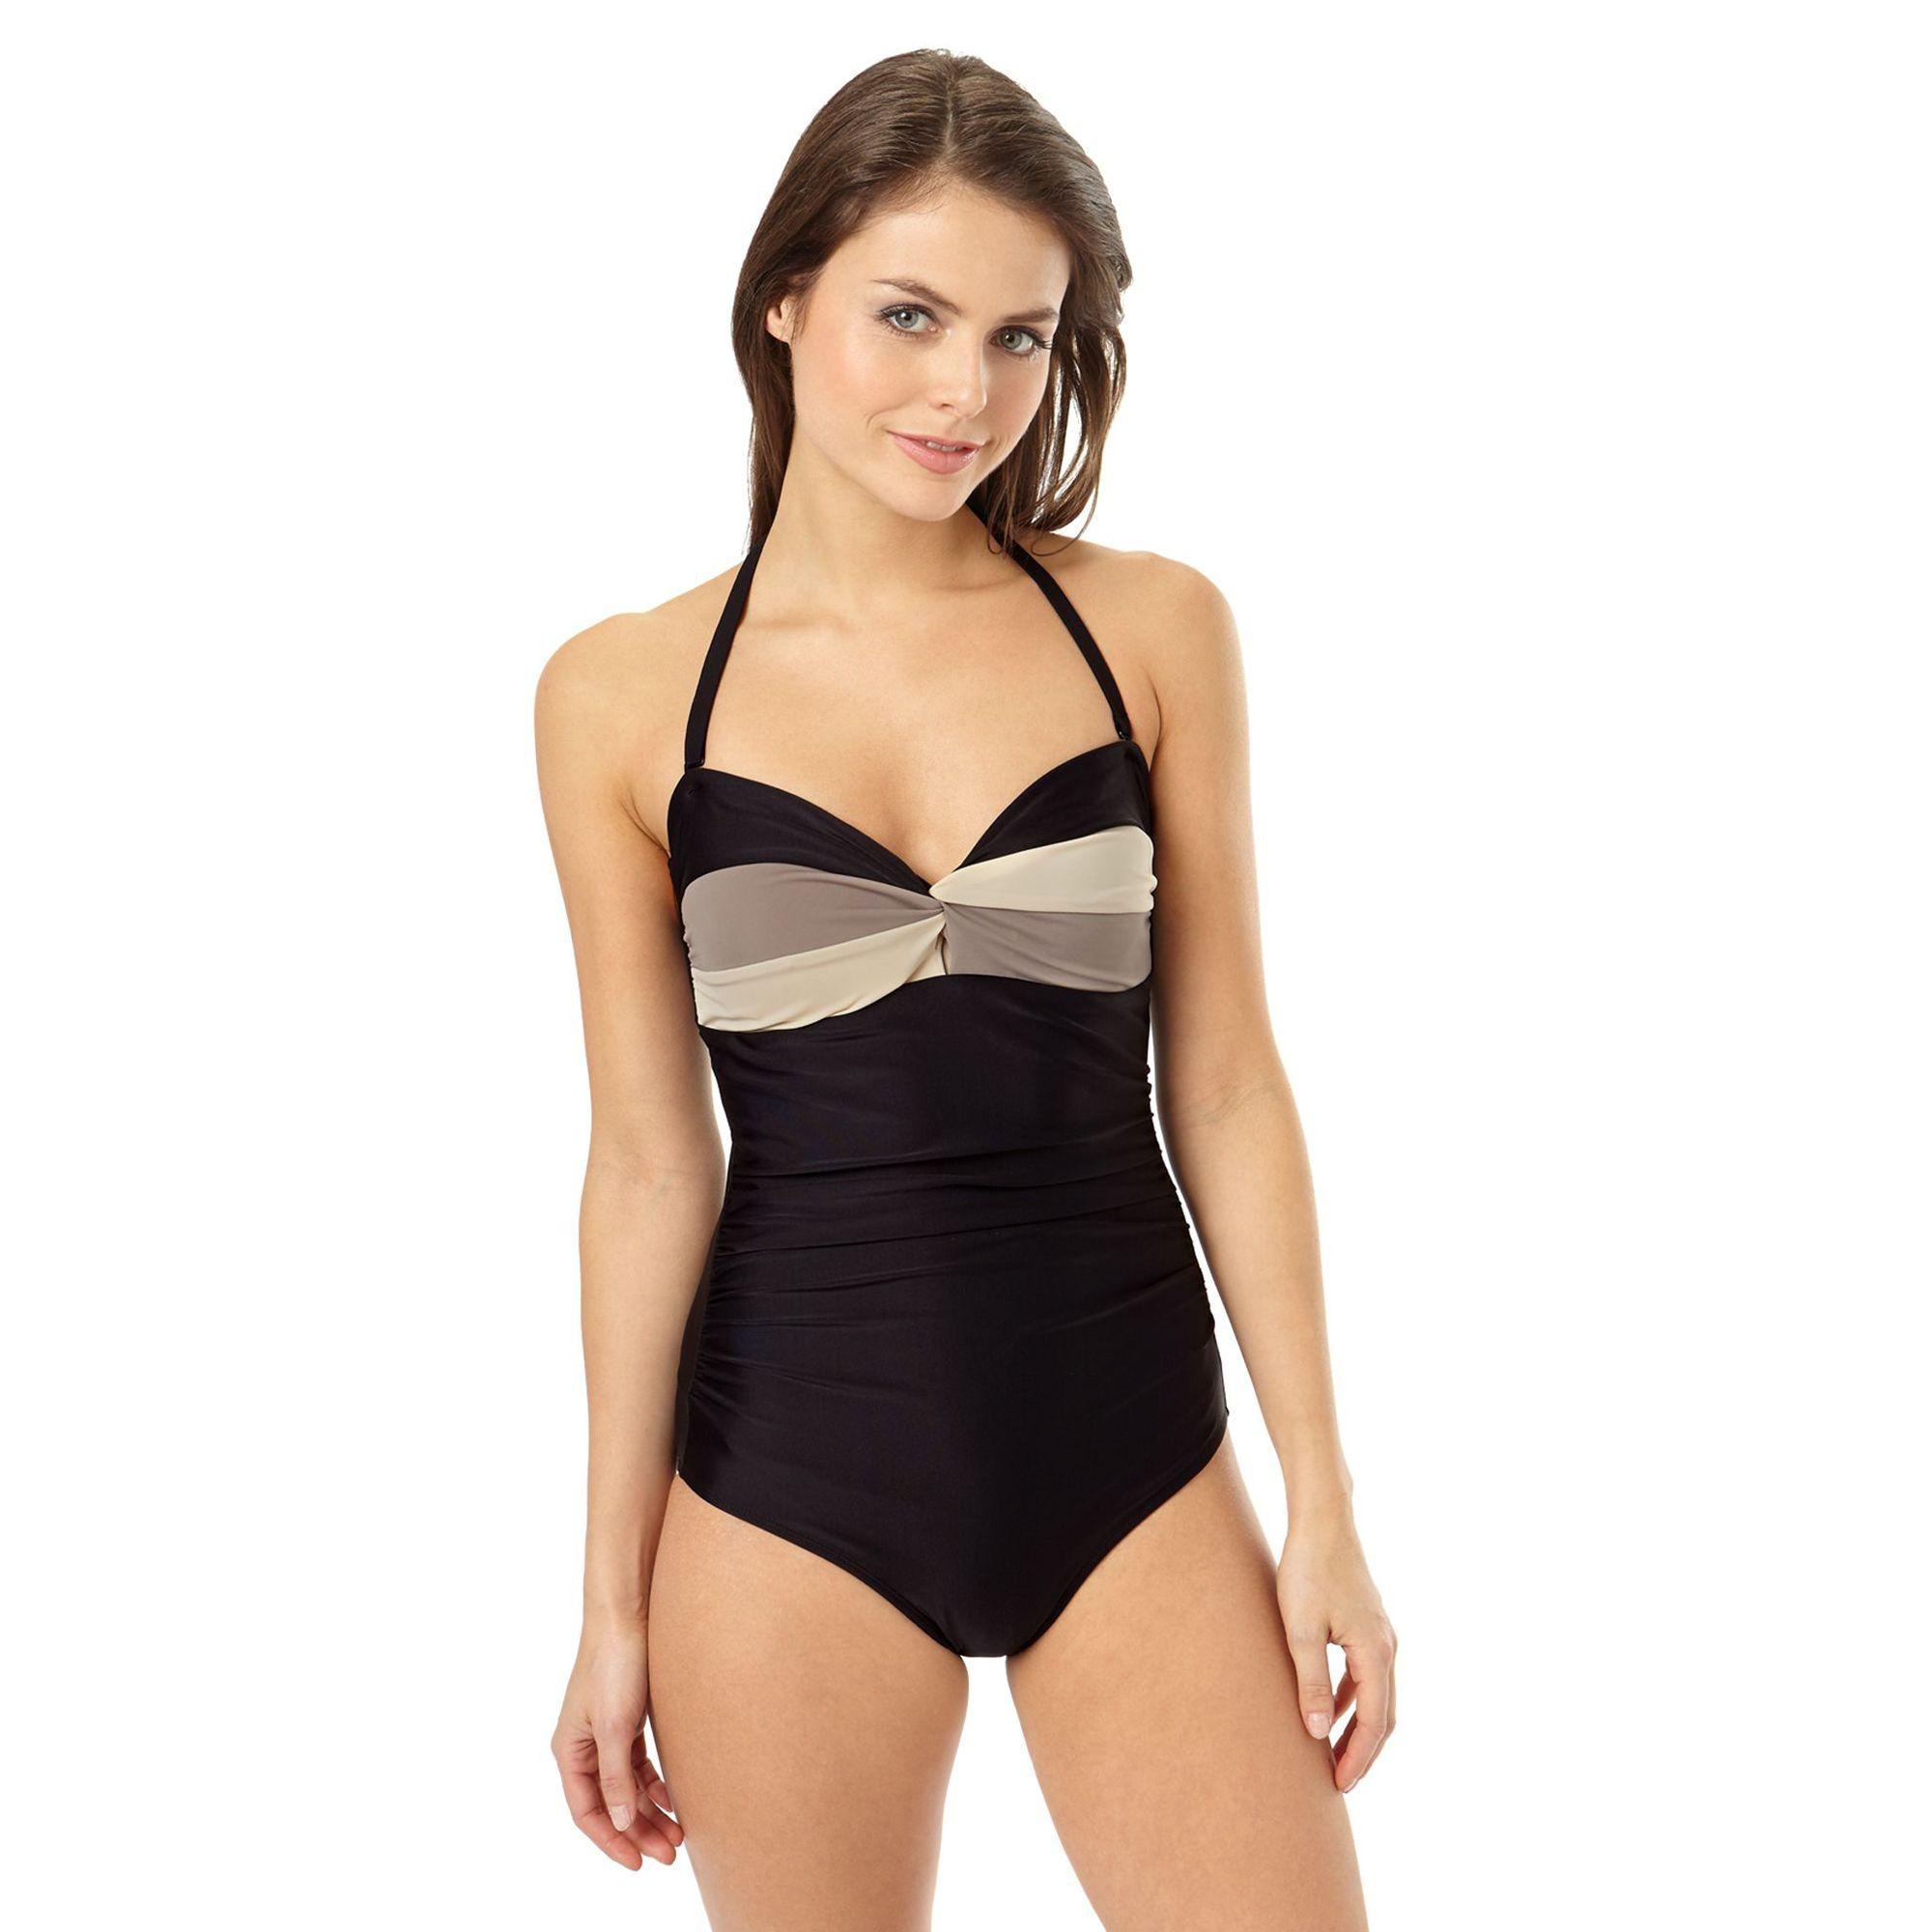 51c9ff6c13 Phase Eight Black And Mocha Colourblock Swimsuit in Black - Lyst